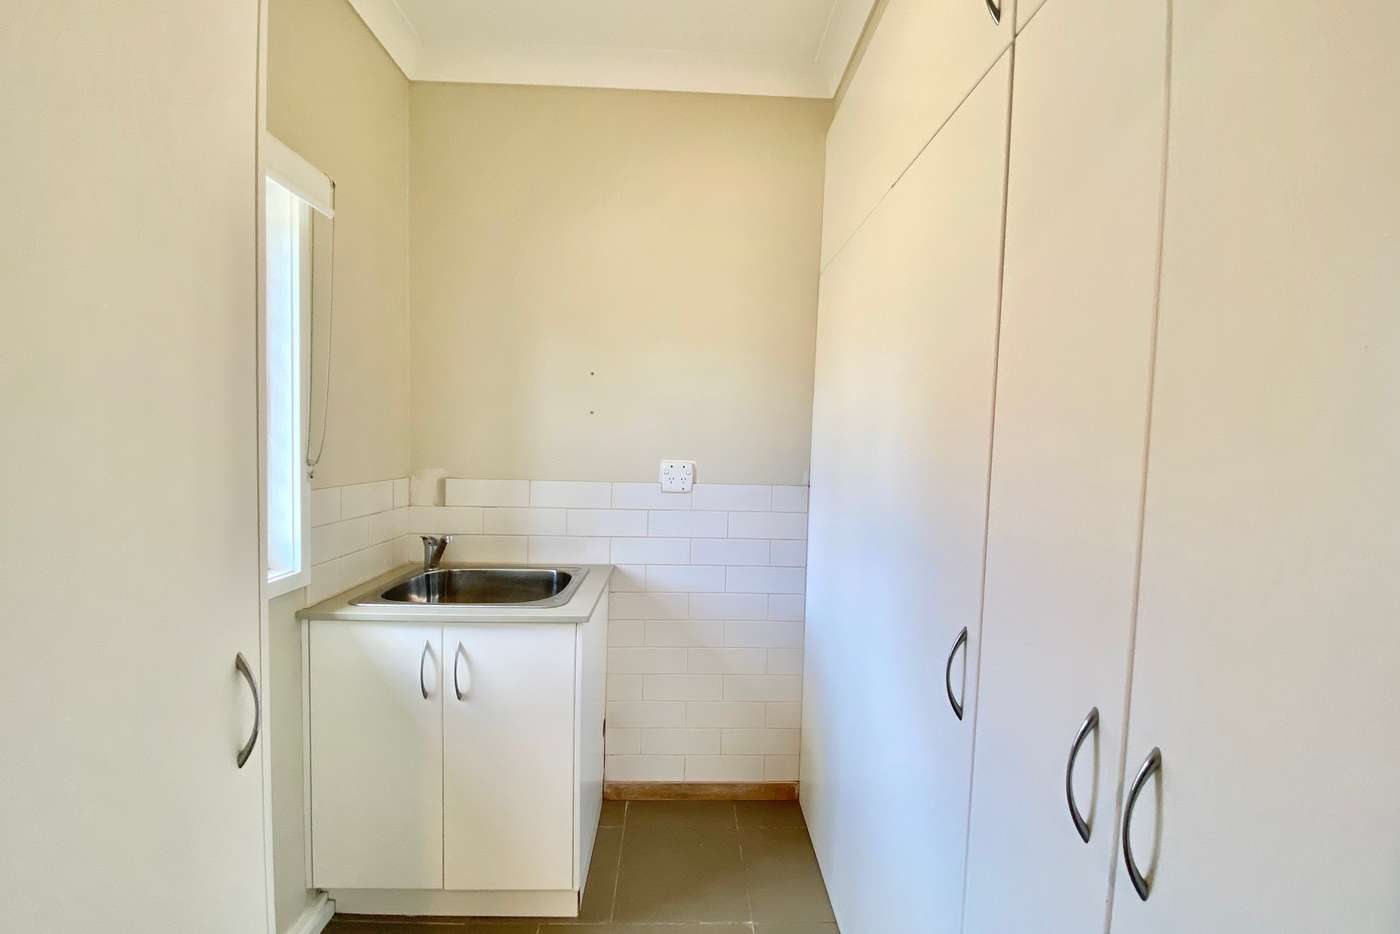 Seventh view of Homely house listing, 14 Hinkler Avenue, Caringbah NSW 2229